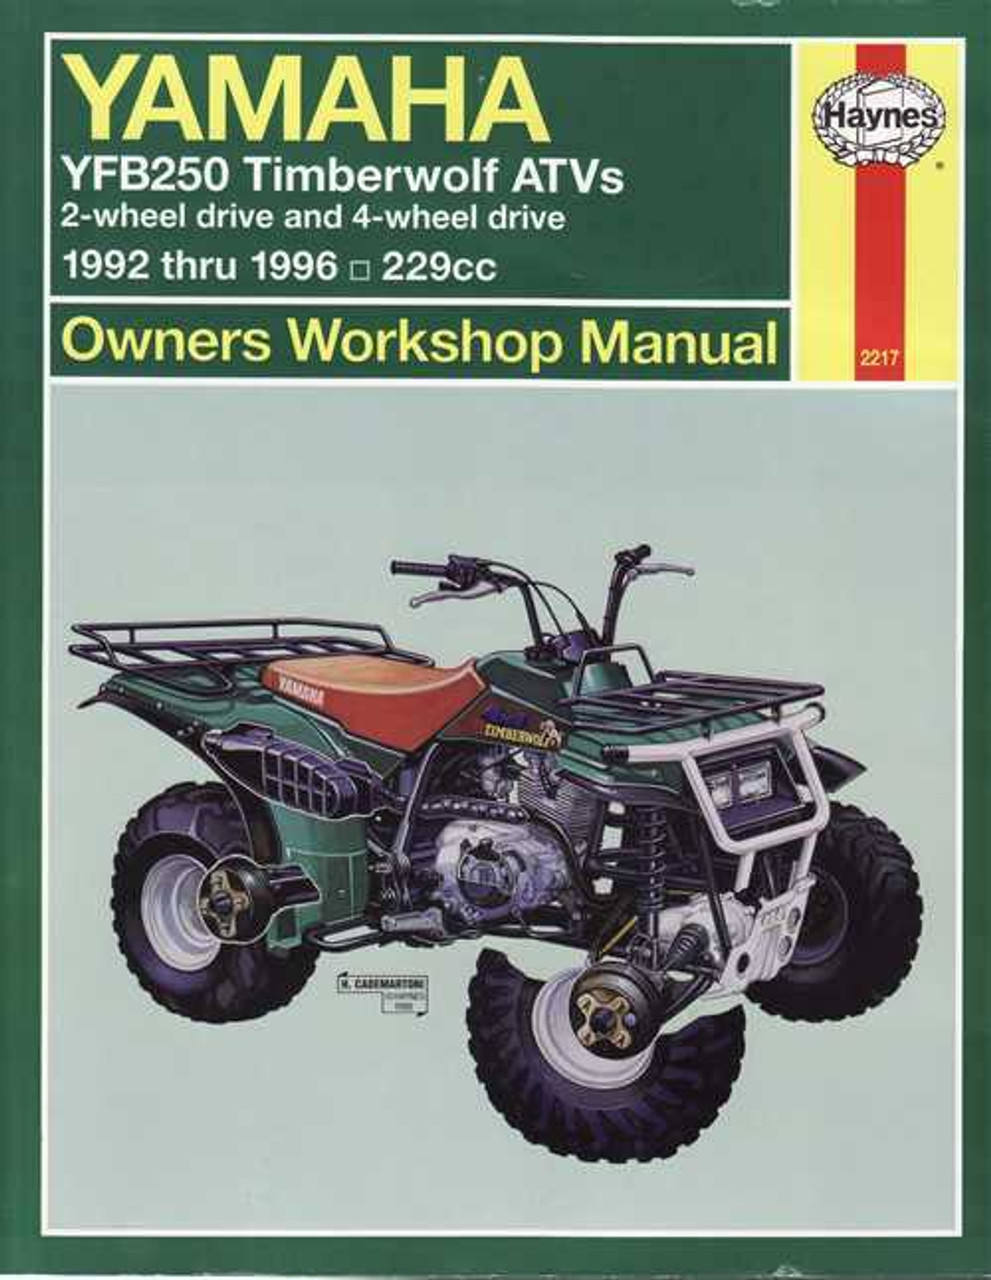 yamaha yfb250 timberwolf atvs 1992 - 1996 workshop manual 1996 buick roadmaster wiring diagram 1996 yfb250 timberwolf wiring diagram